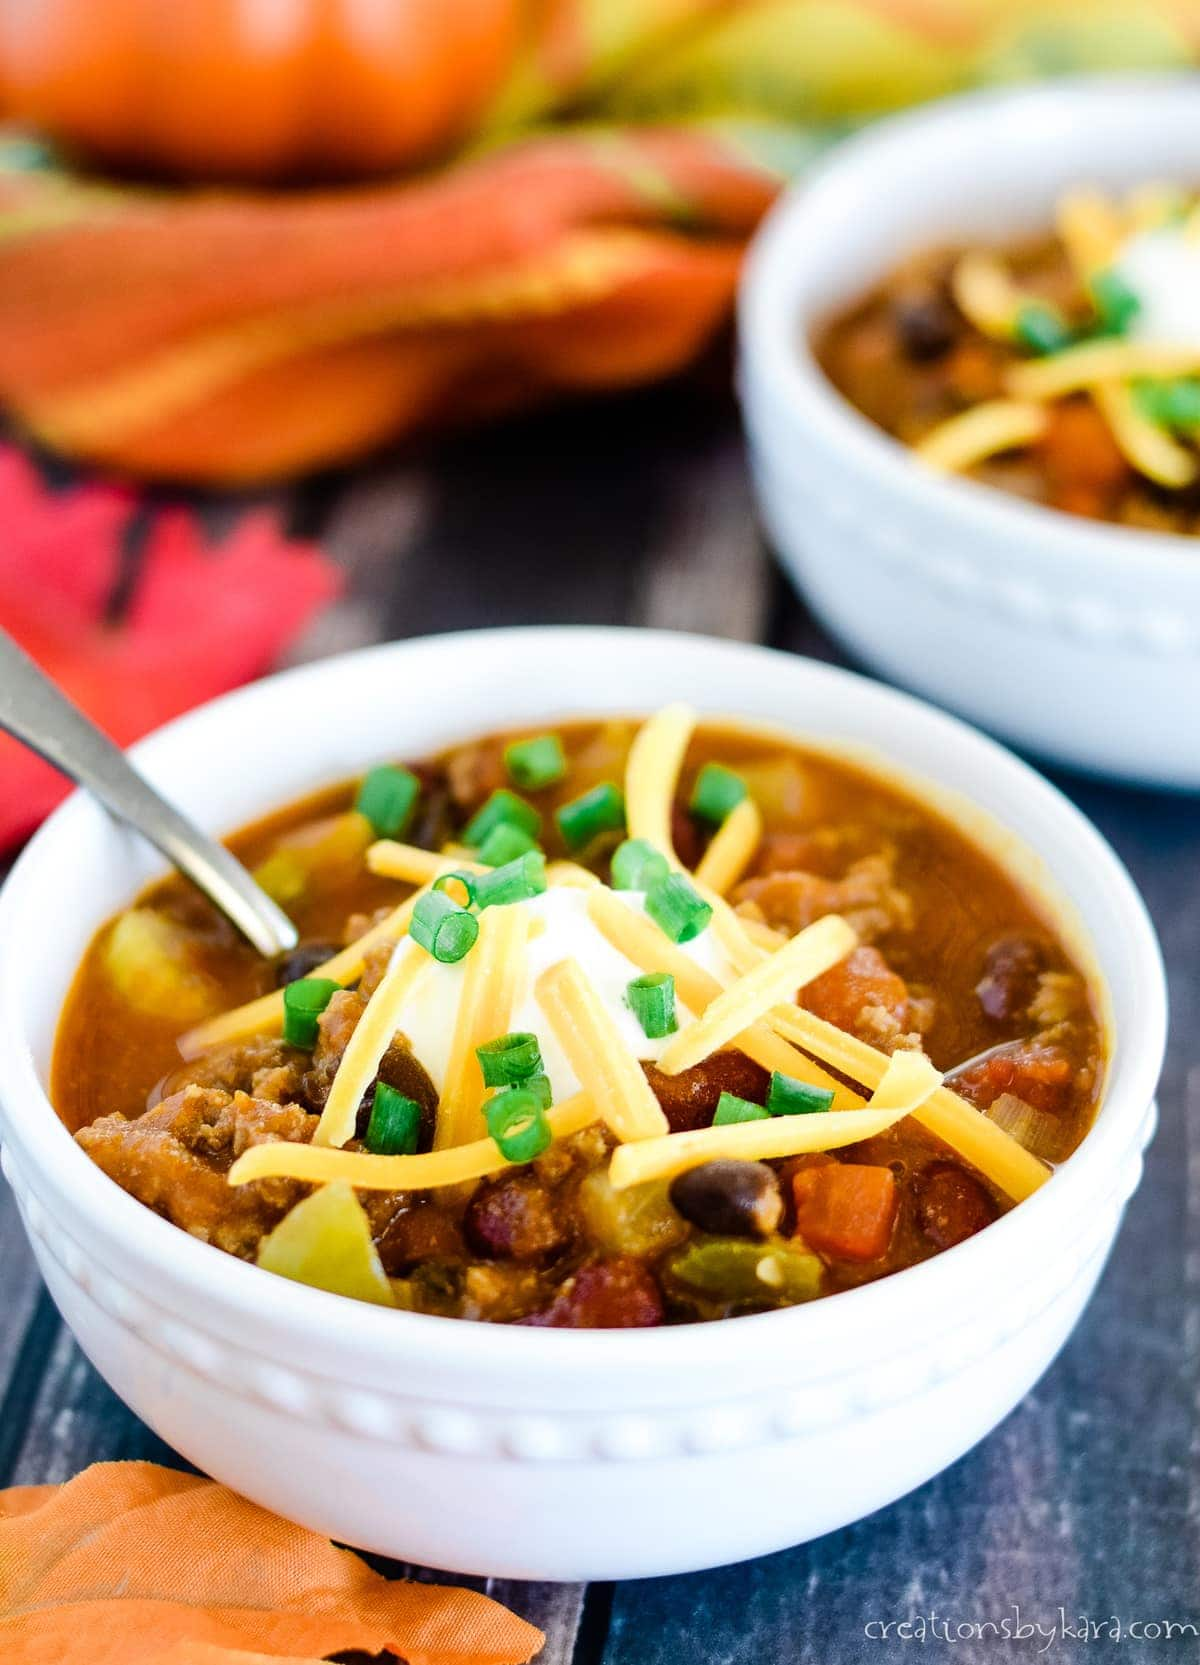 Recipe for hearty pumpkin chili with garnishes